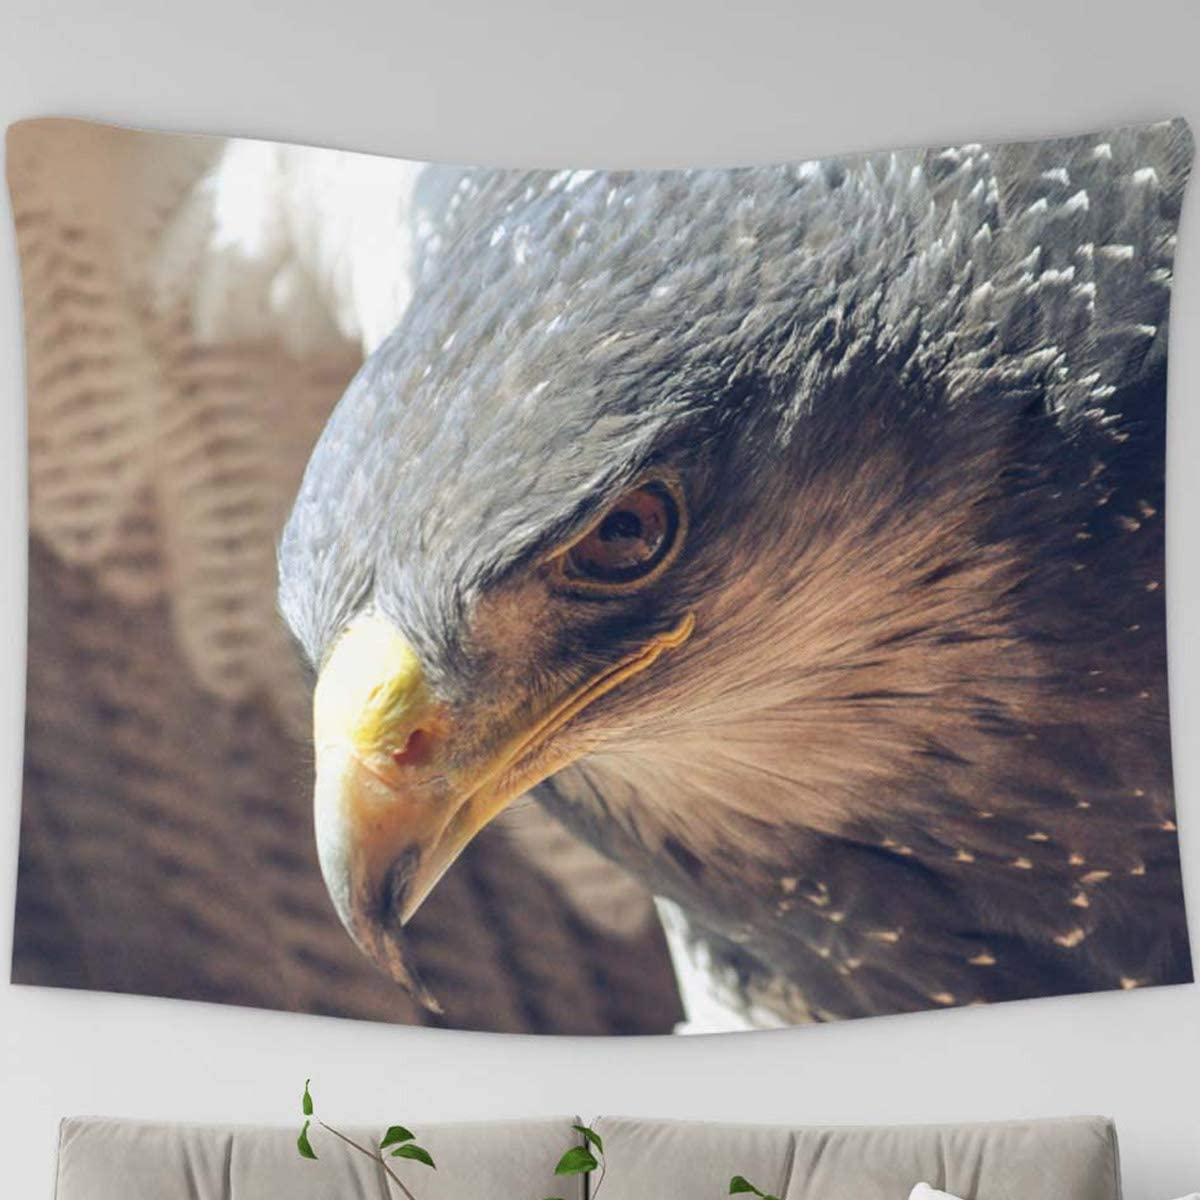 Amazon Com Loussiesd Eagle Tapestry Hippie Tapestry Wall Hanging Home Decor Animal Theme Eagle For Bedroom Kids Room Living Room Dorm Office Polyester Fabric Needles Included Home Kitchen